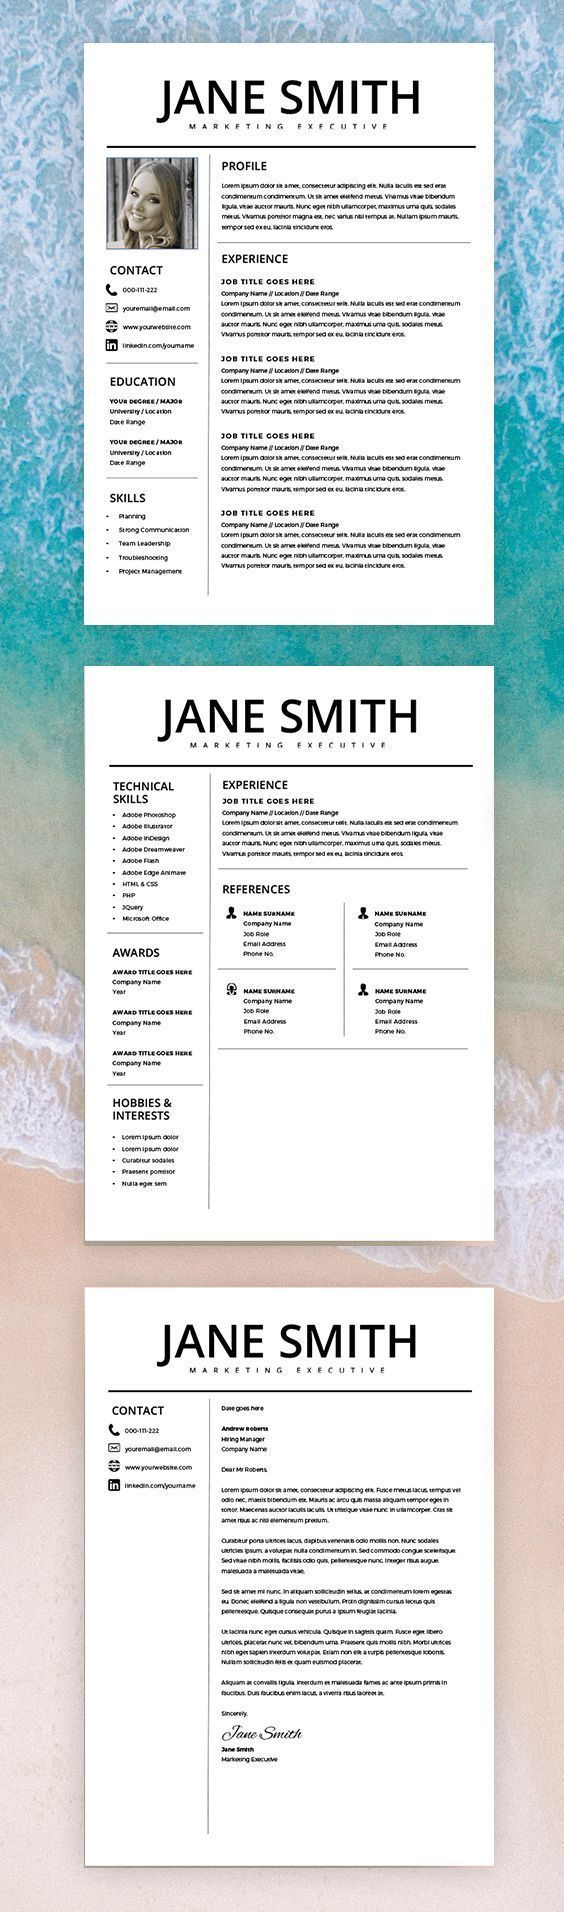 Professional Resume Template - MS Word Compatible - Best CV Template ...